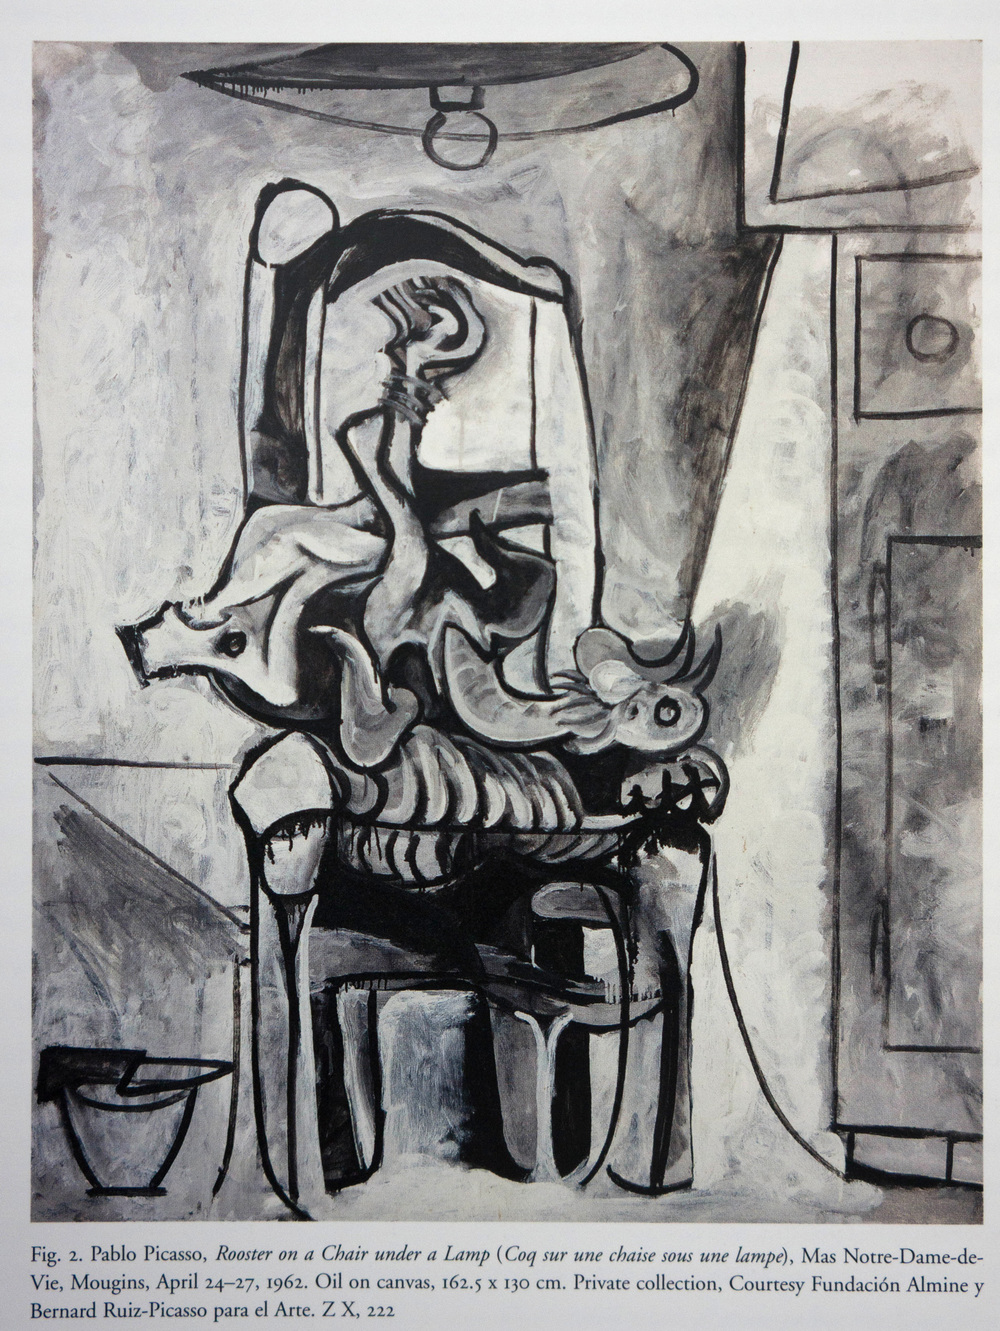 site-10-2-14 picasso-rooster on a chair under a lamp.jpg